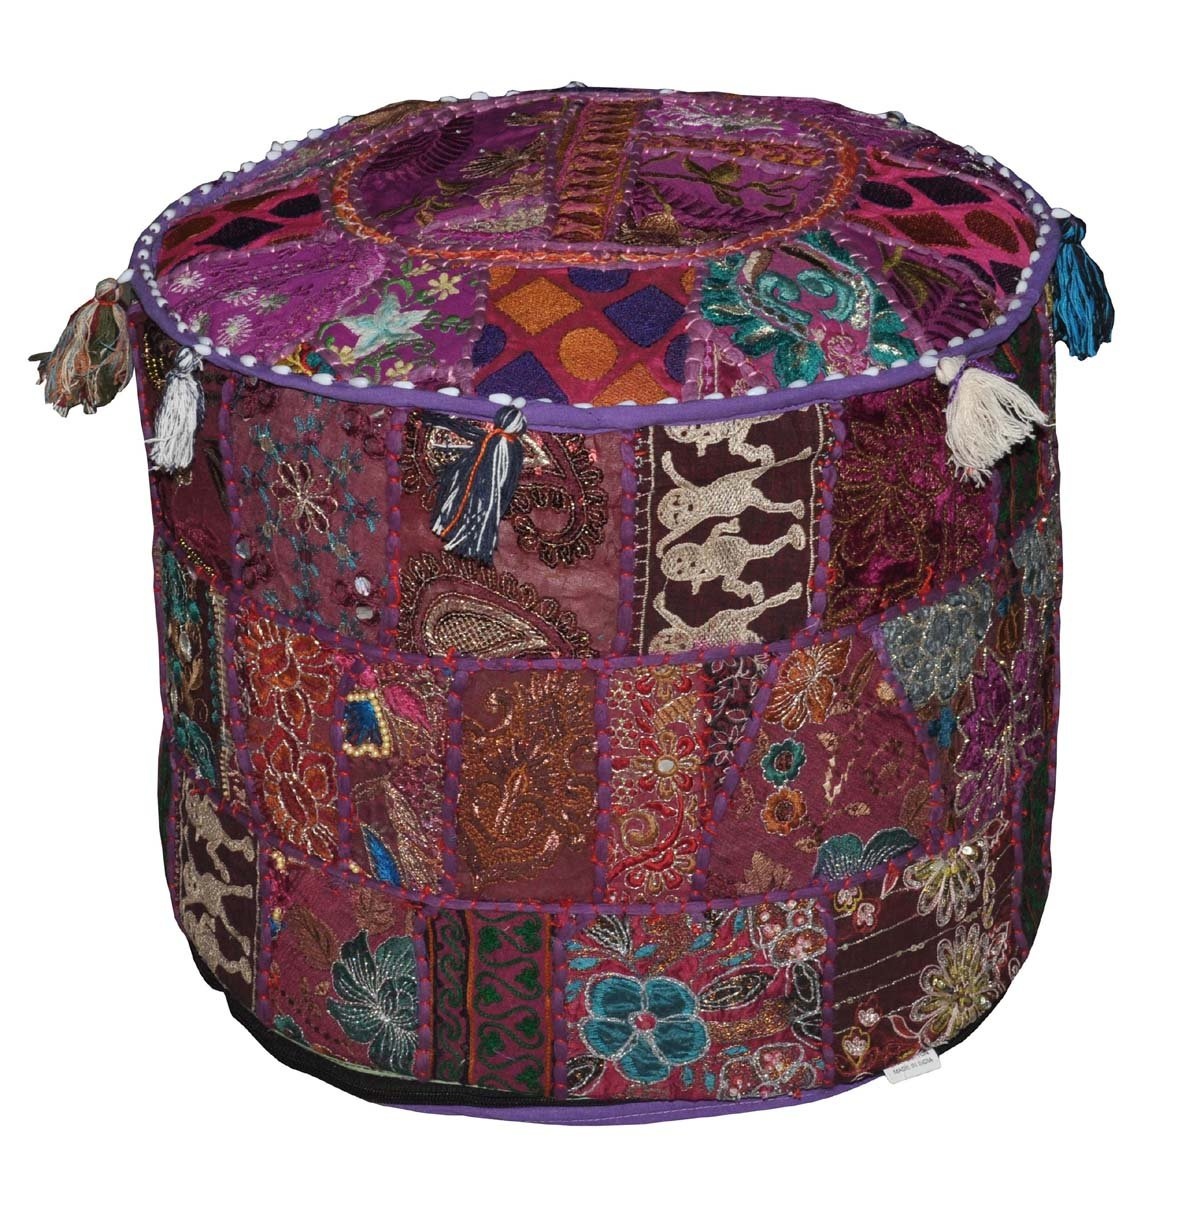 Indian Pouf Patch Embroidered Ottoman Work Round OiZukPX